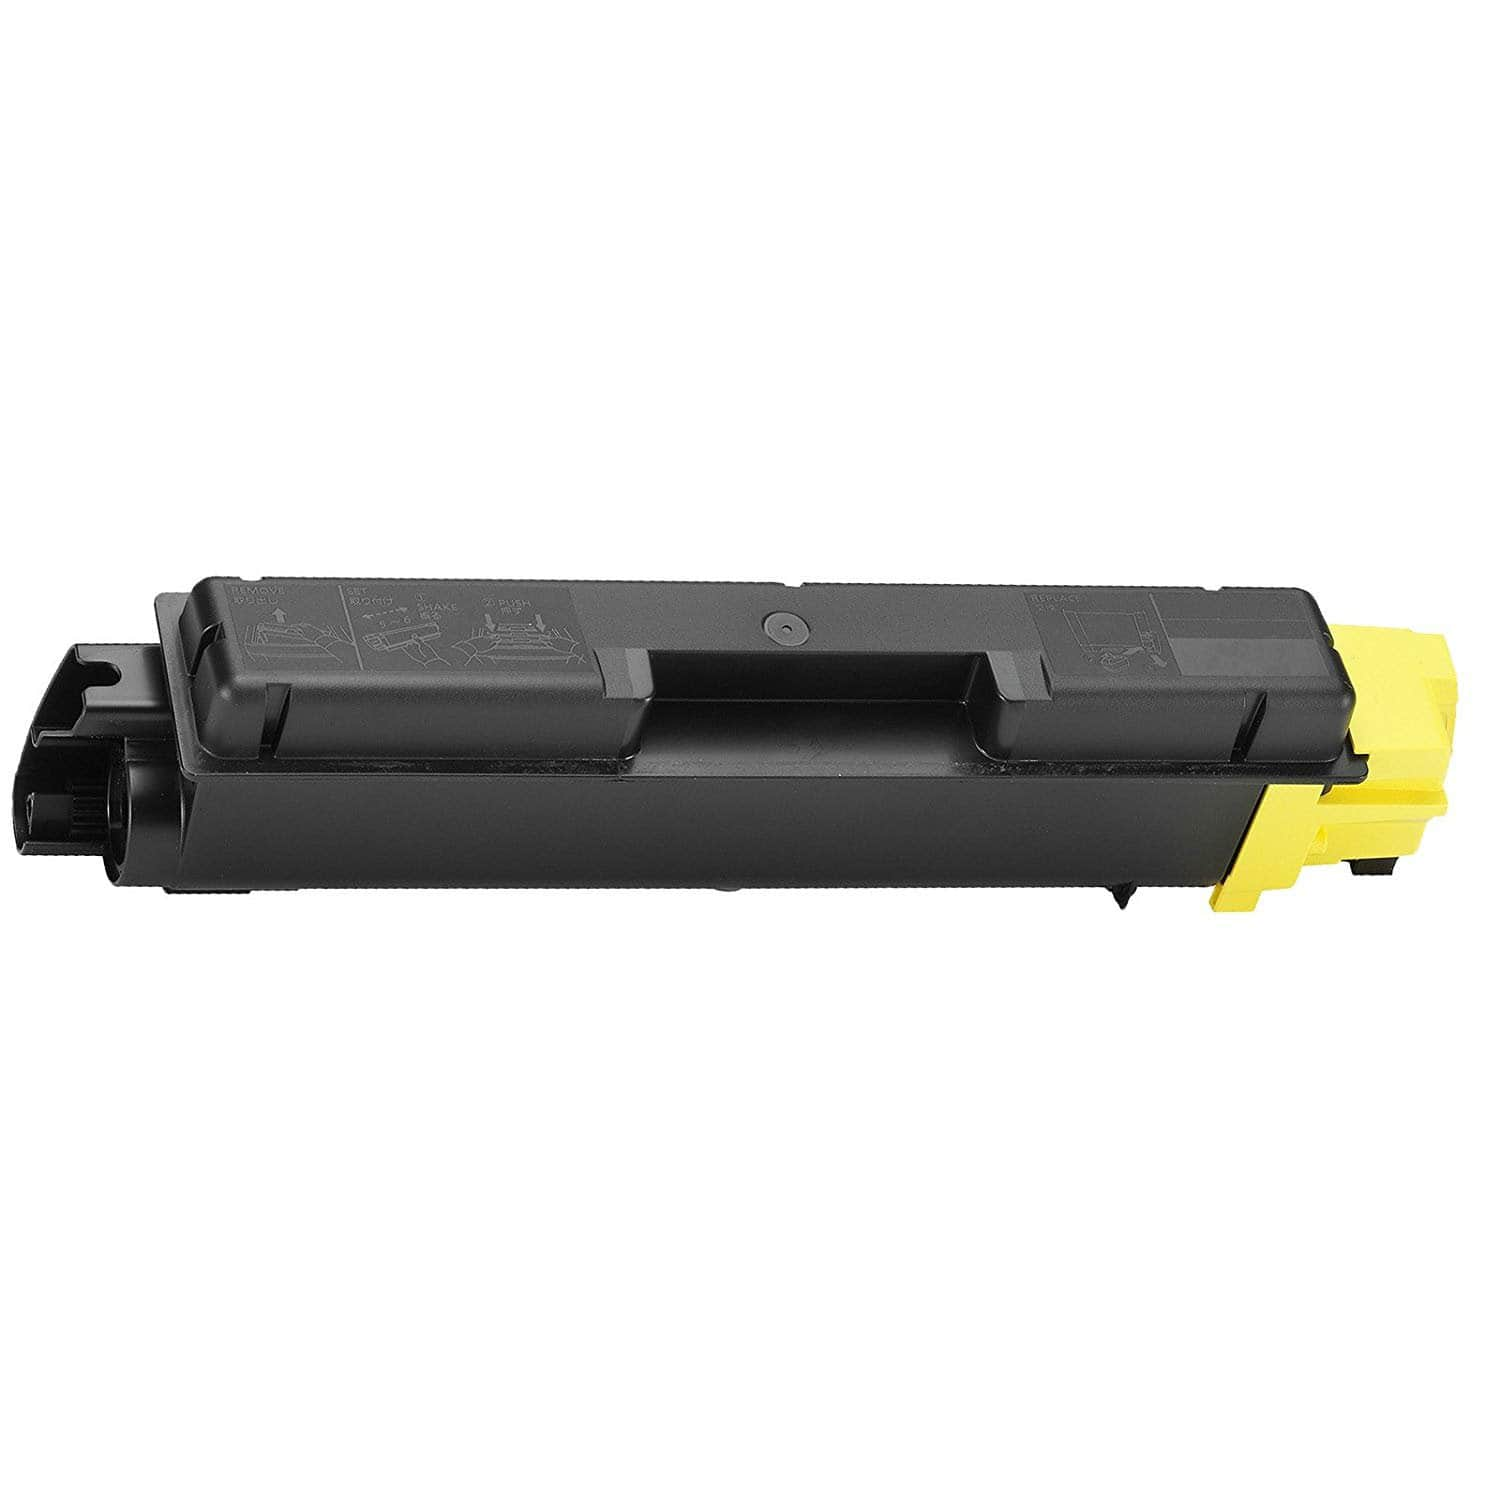 TK-582Y Toner Cartridge - Kyocera Mita Compatible (Yellow)